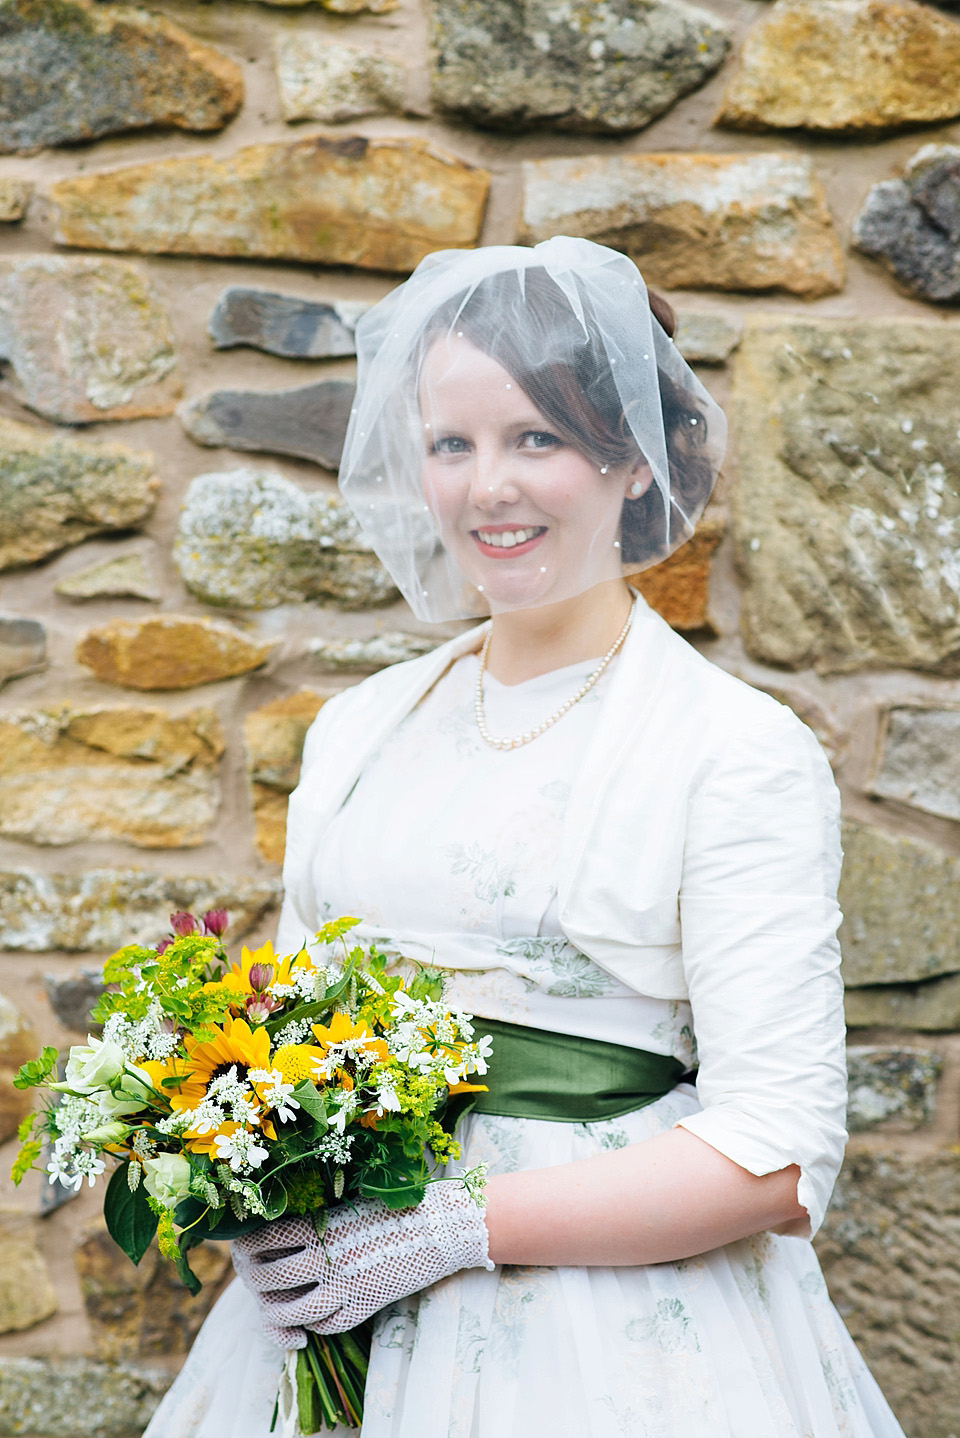 A Village Hall Wedding with a 50's Floral Dress and Street Party Celebration